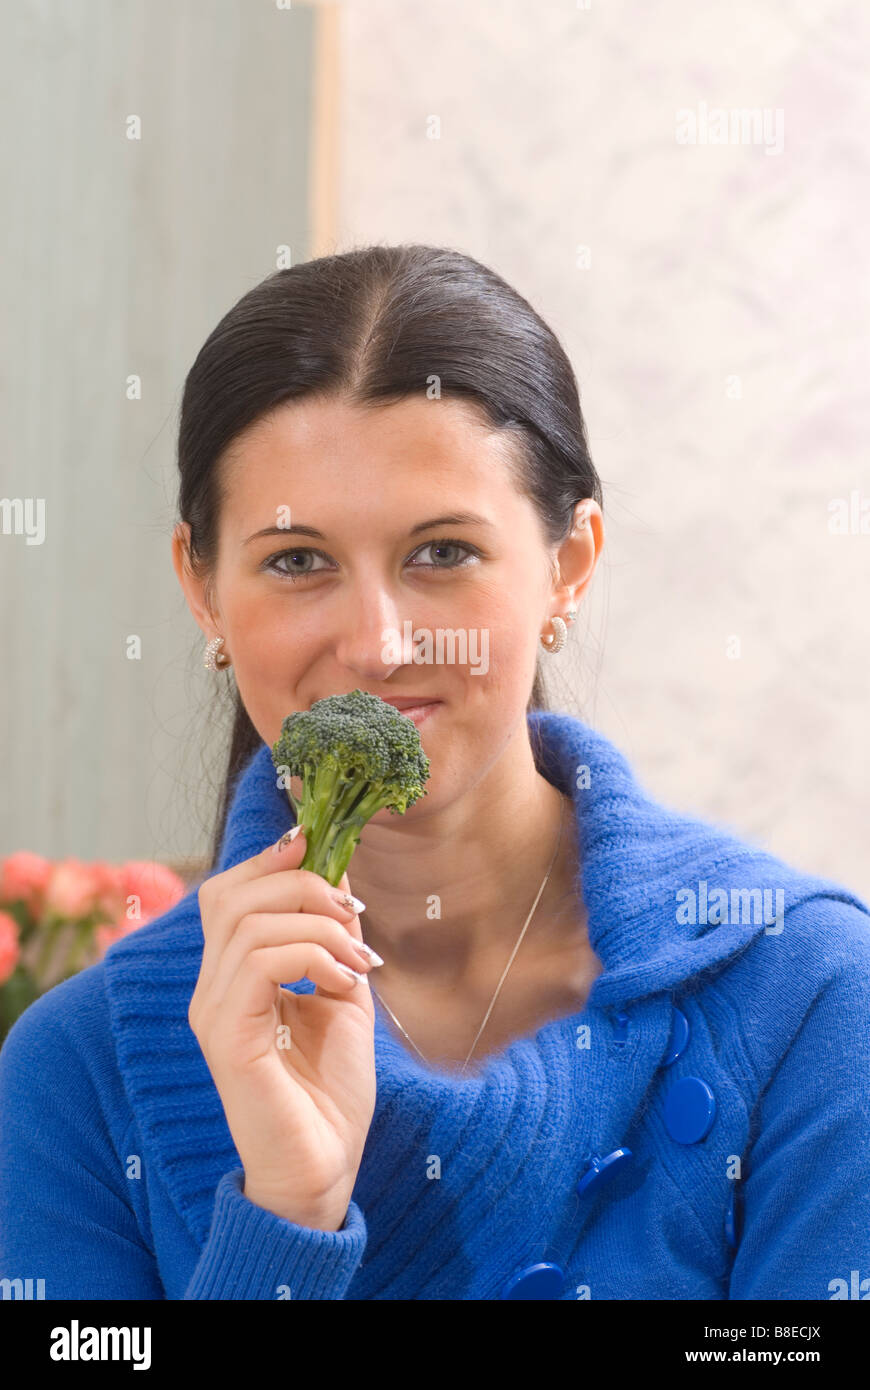 Young woman eating green raw broccoli - Stock Image